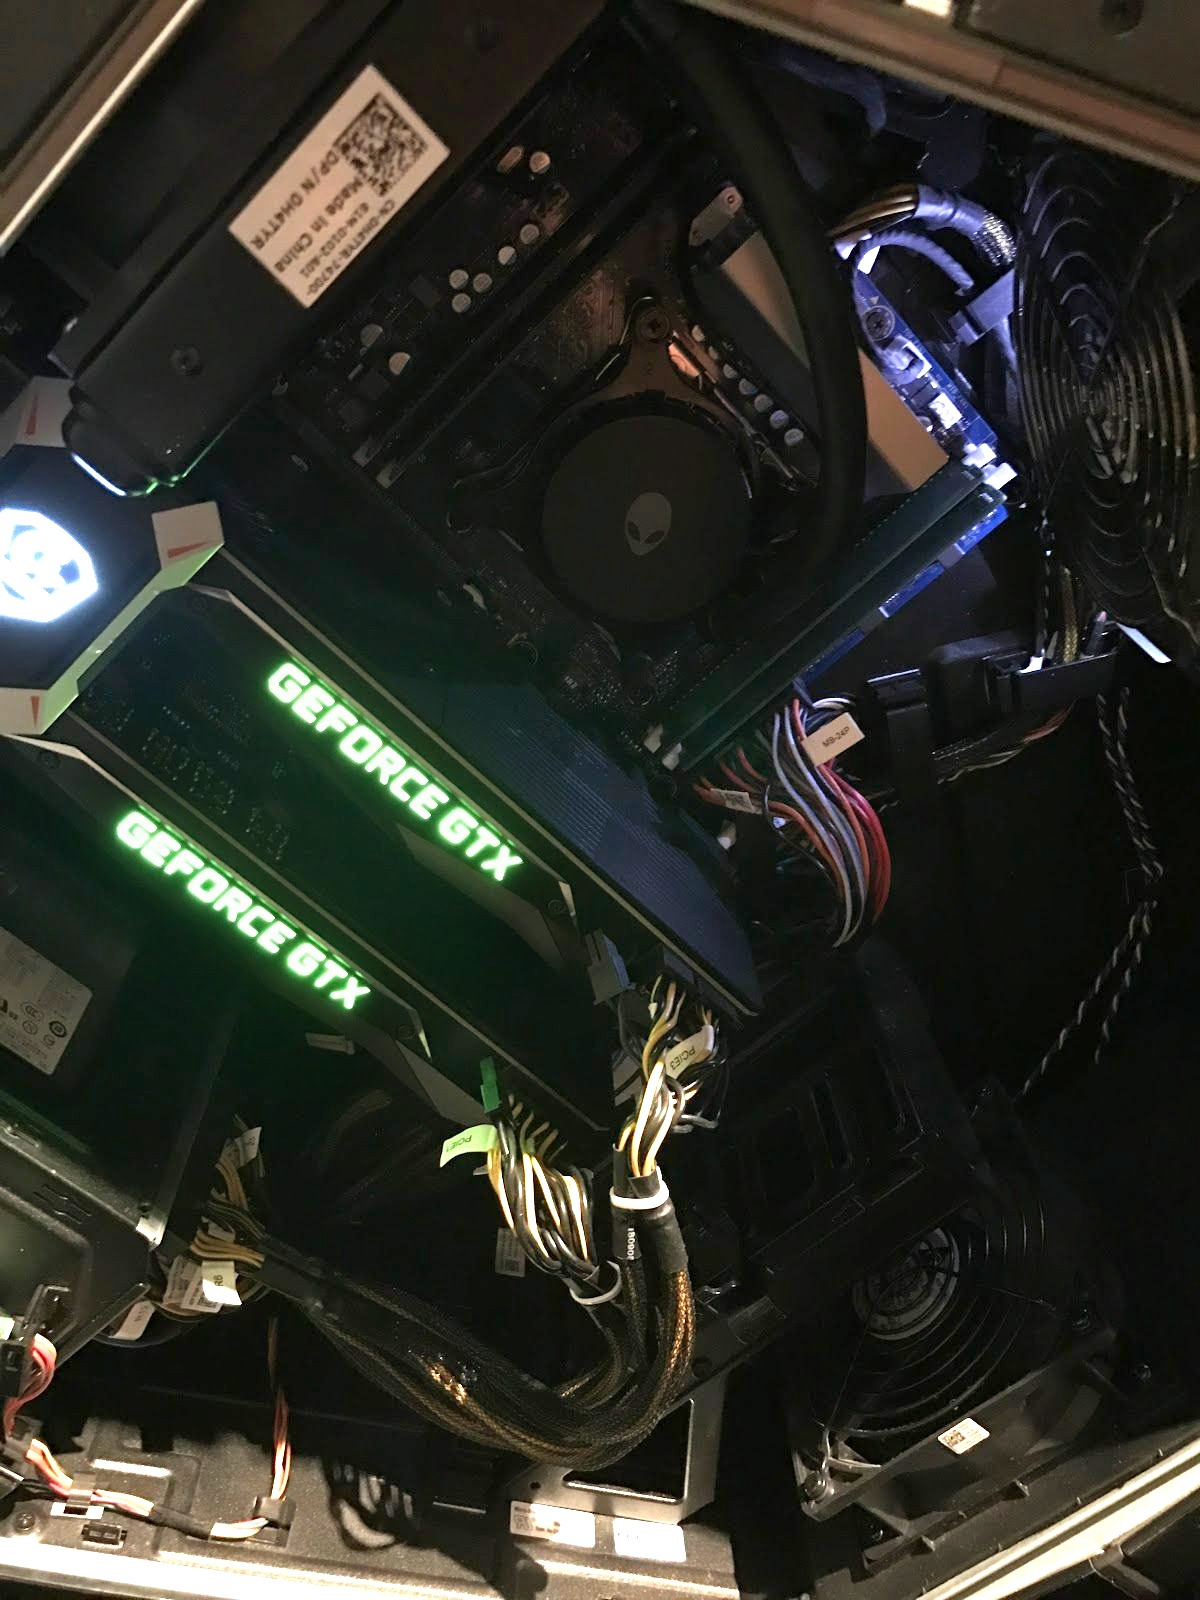 Two GeForce GTX cards in a computer chassis